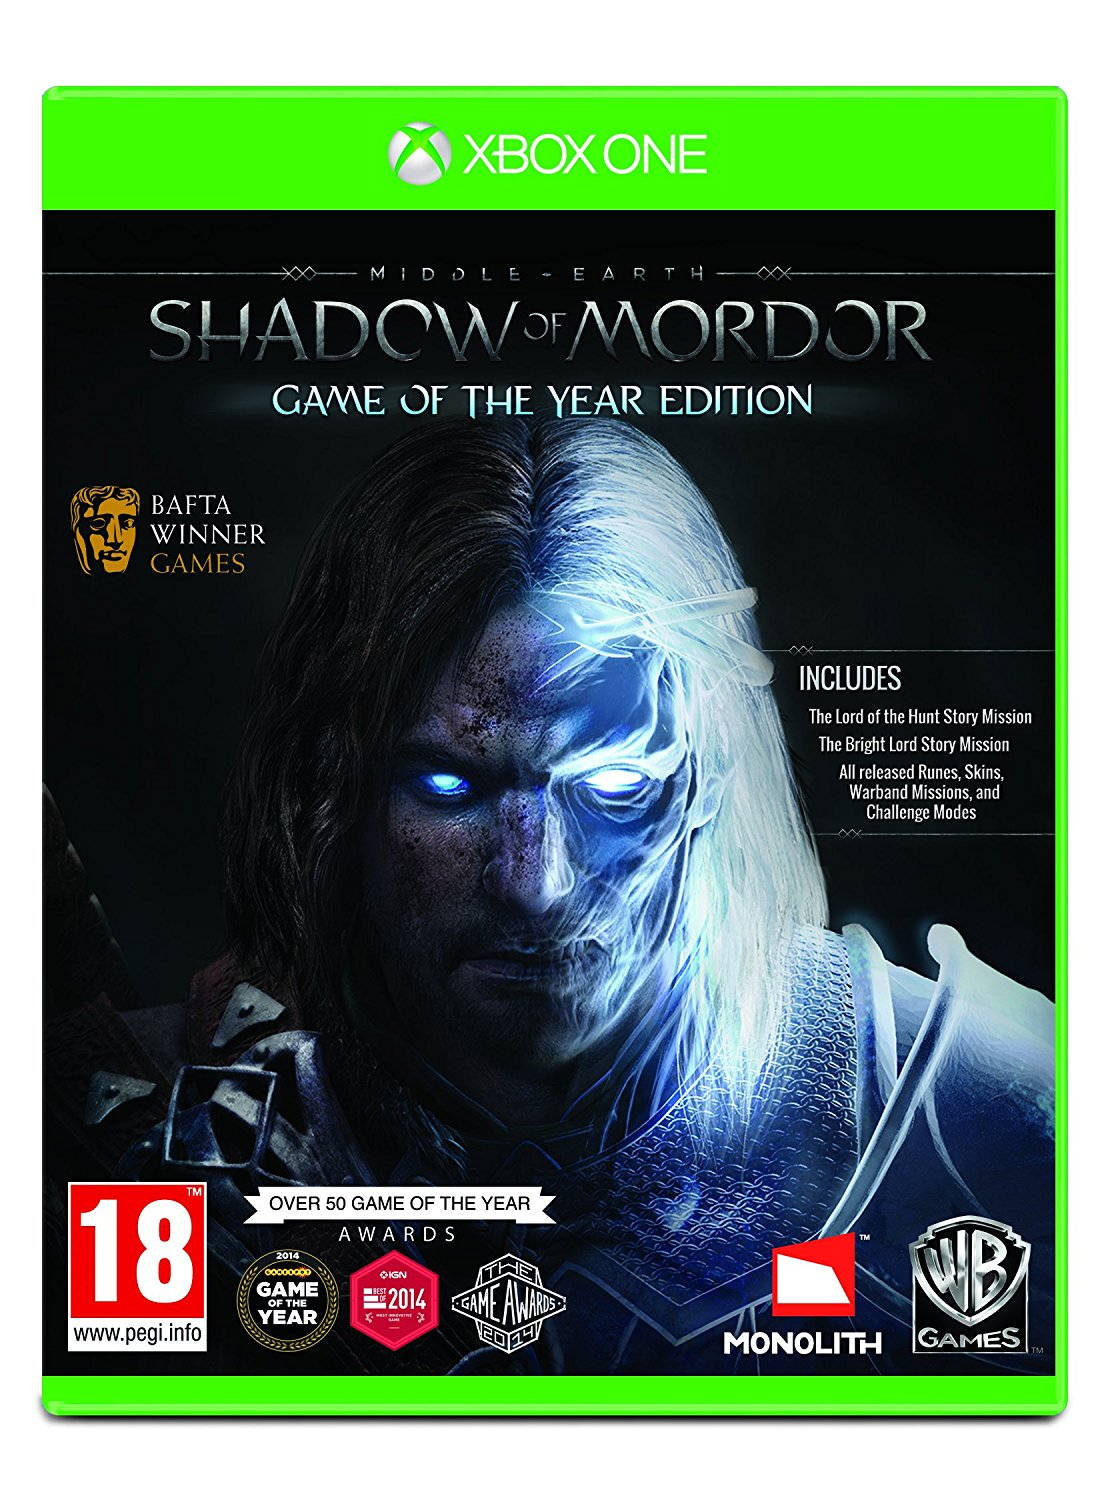 Middle - Earth: Shadow Of Mordor Game Of The Year Edition XBOX ONE, XBOX ONE, DVDMEGASTORE, DVDMEGASTORE